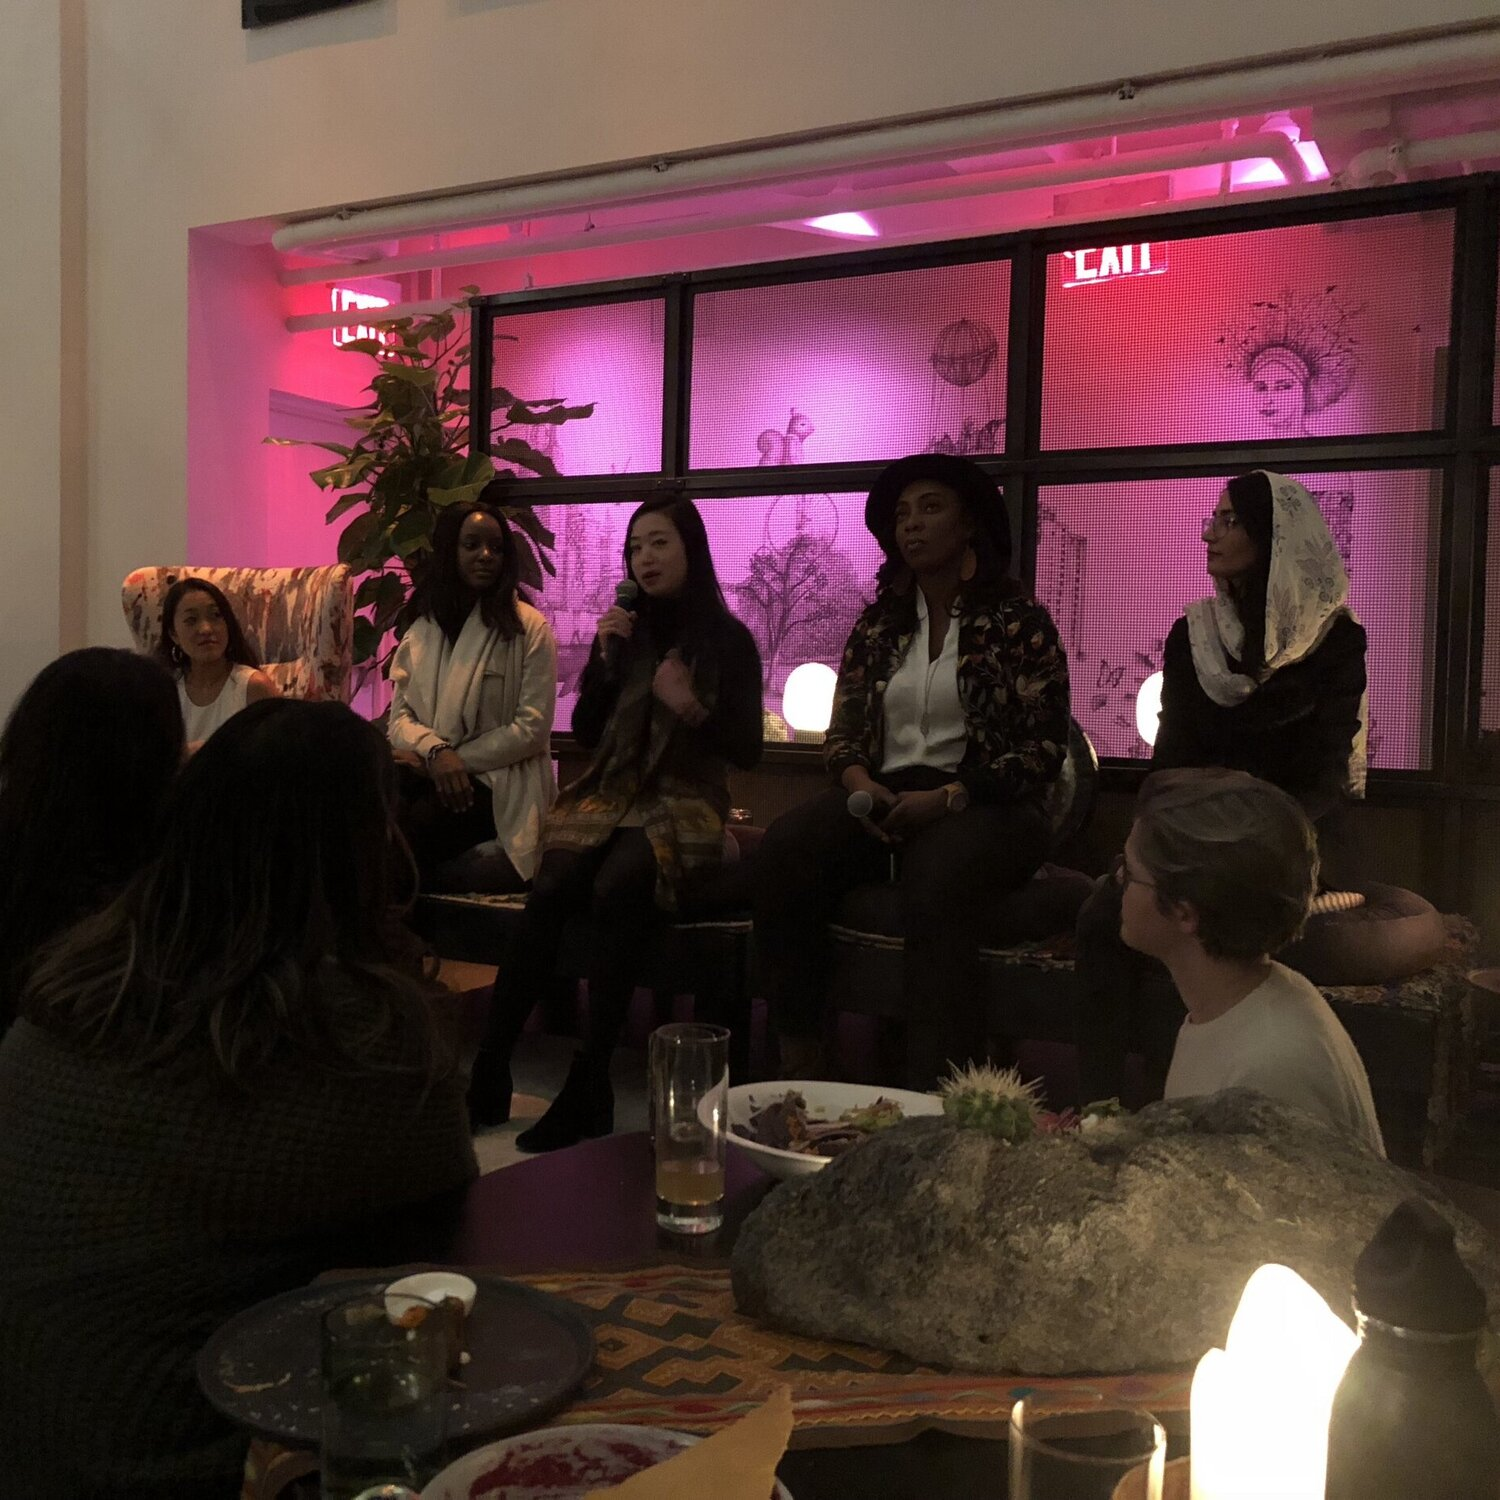 Bold, Beautiful, and Brave: Kick Ass Female-Driven Events - When the bold, beautiful, and brave get together in a space, there is always an energy simmering in the air. Dreamers intersect with entrepreneurs and become eager to collaborate and share. Last week, I went to some brilliant female-run events. I love seeing how many powerhouse visionaries are gathering in pockets of NYC, sharing ideas, triumphs, and frustrations with fellow women…